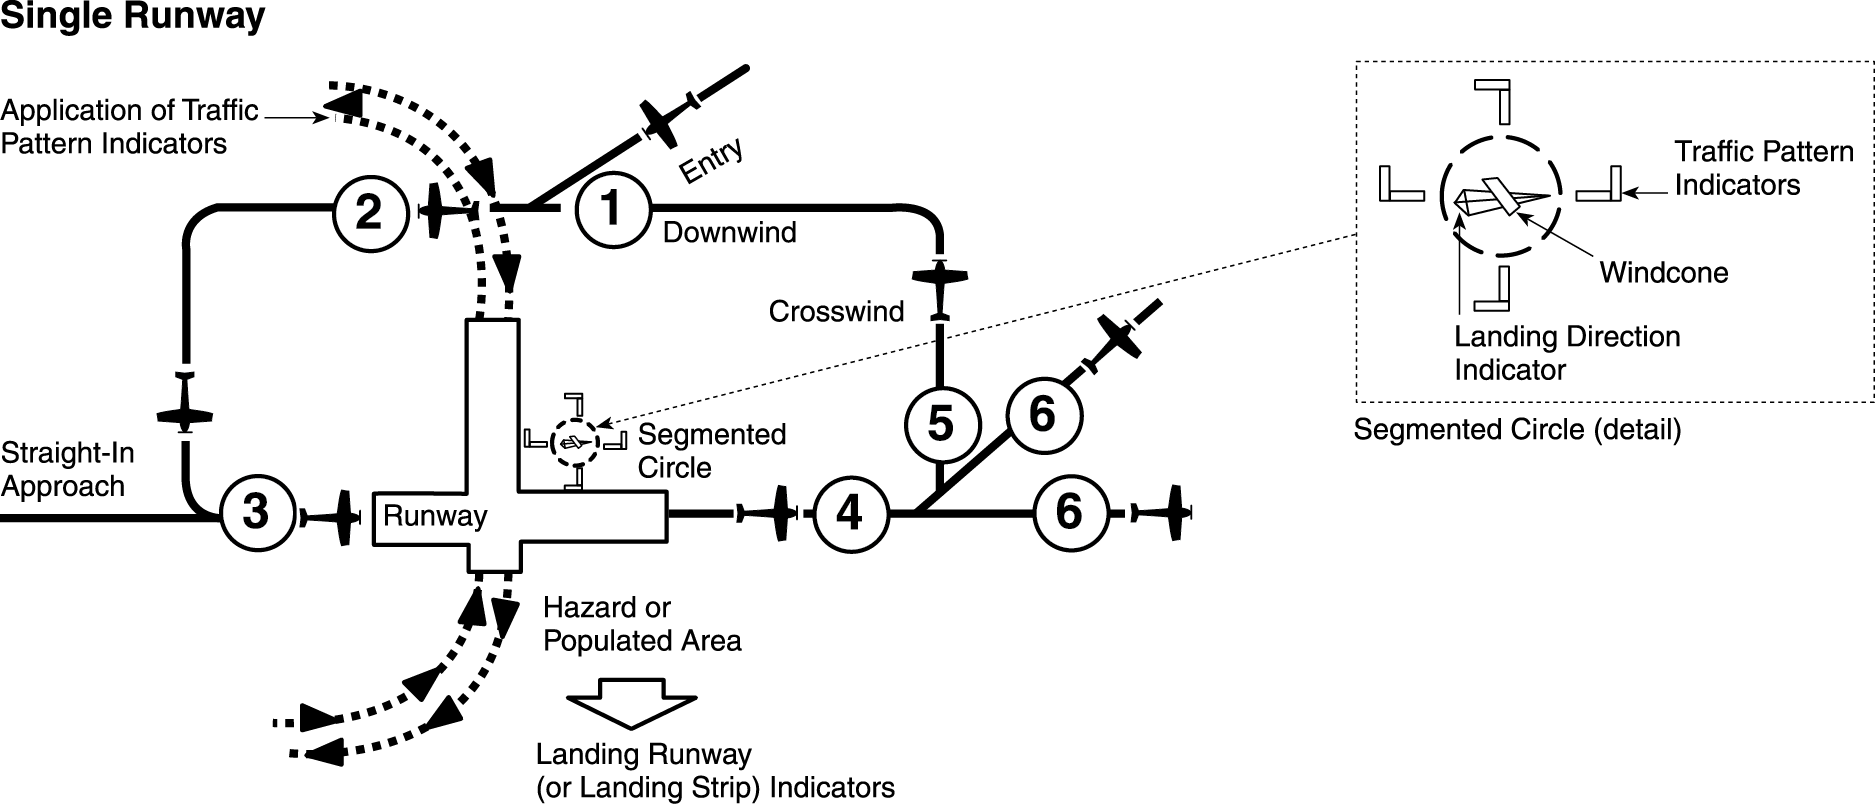 Procedures And Airport Operations The Airport Learn To Fly Blog